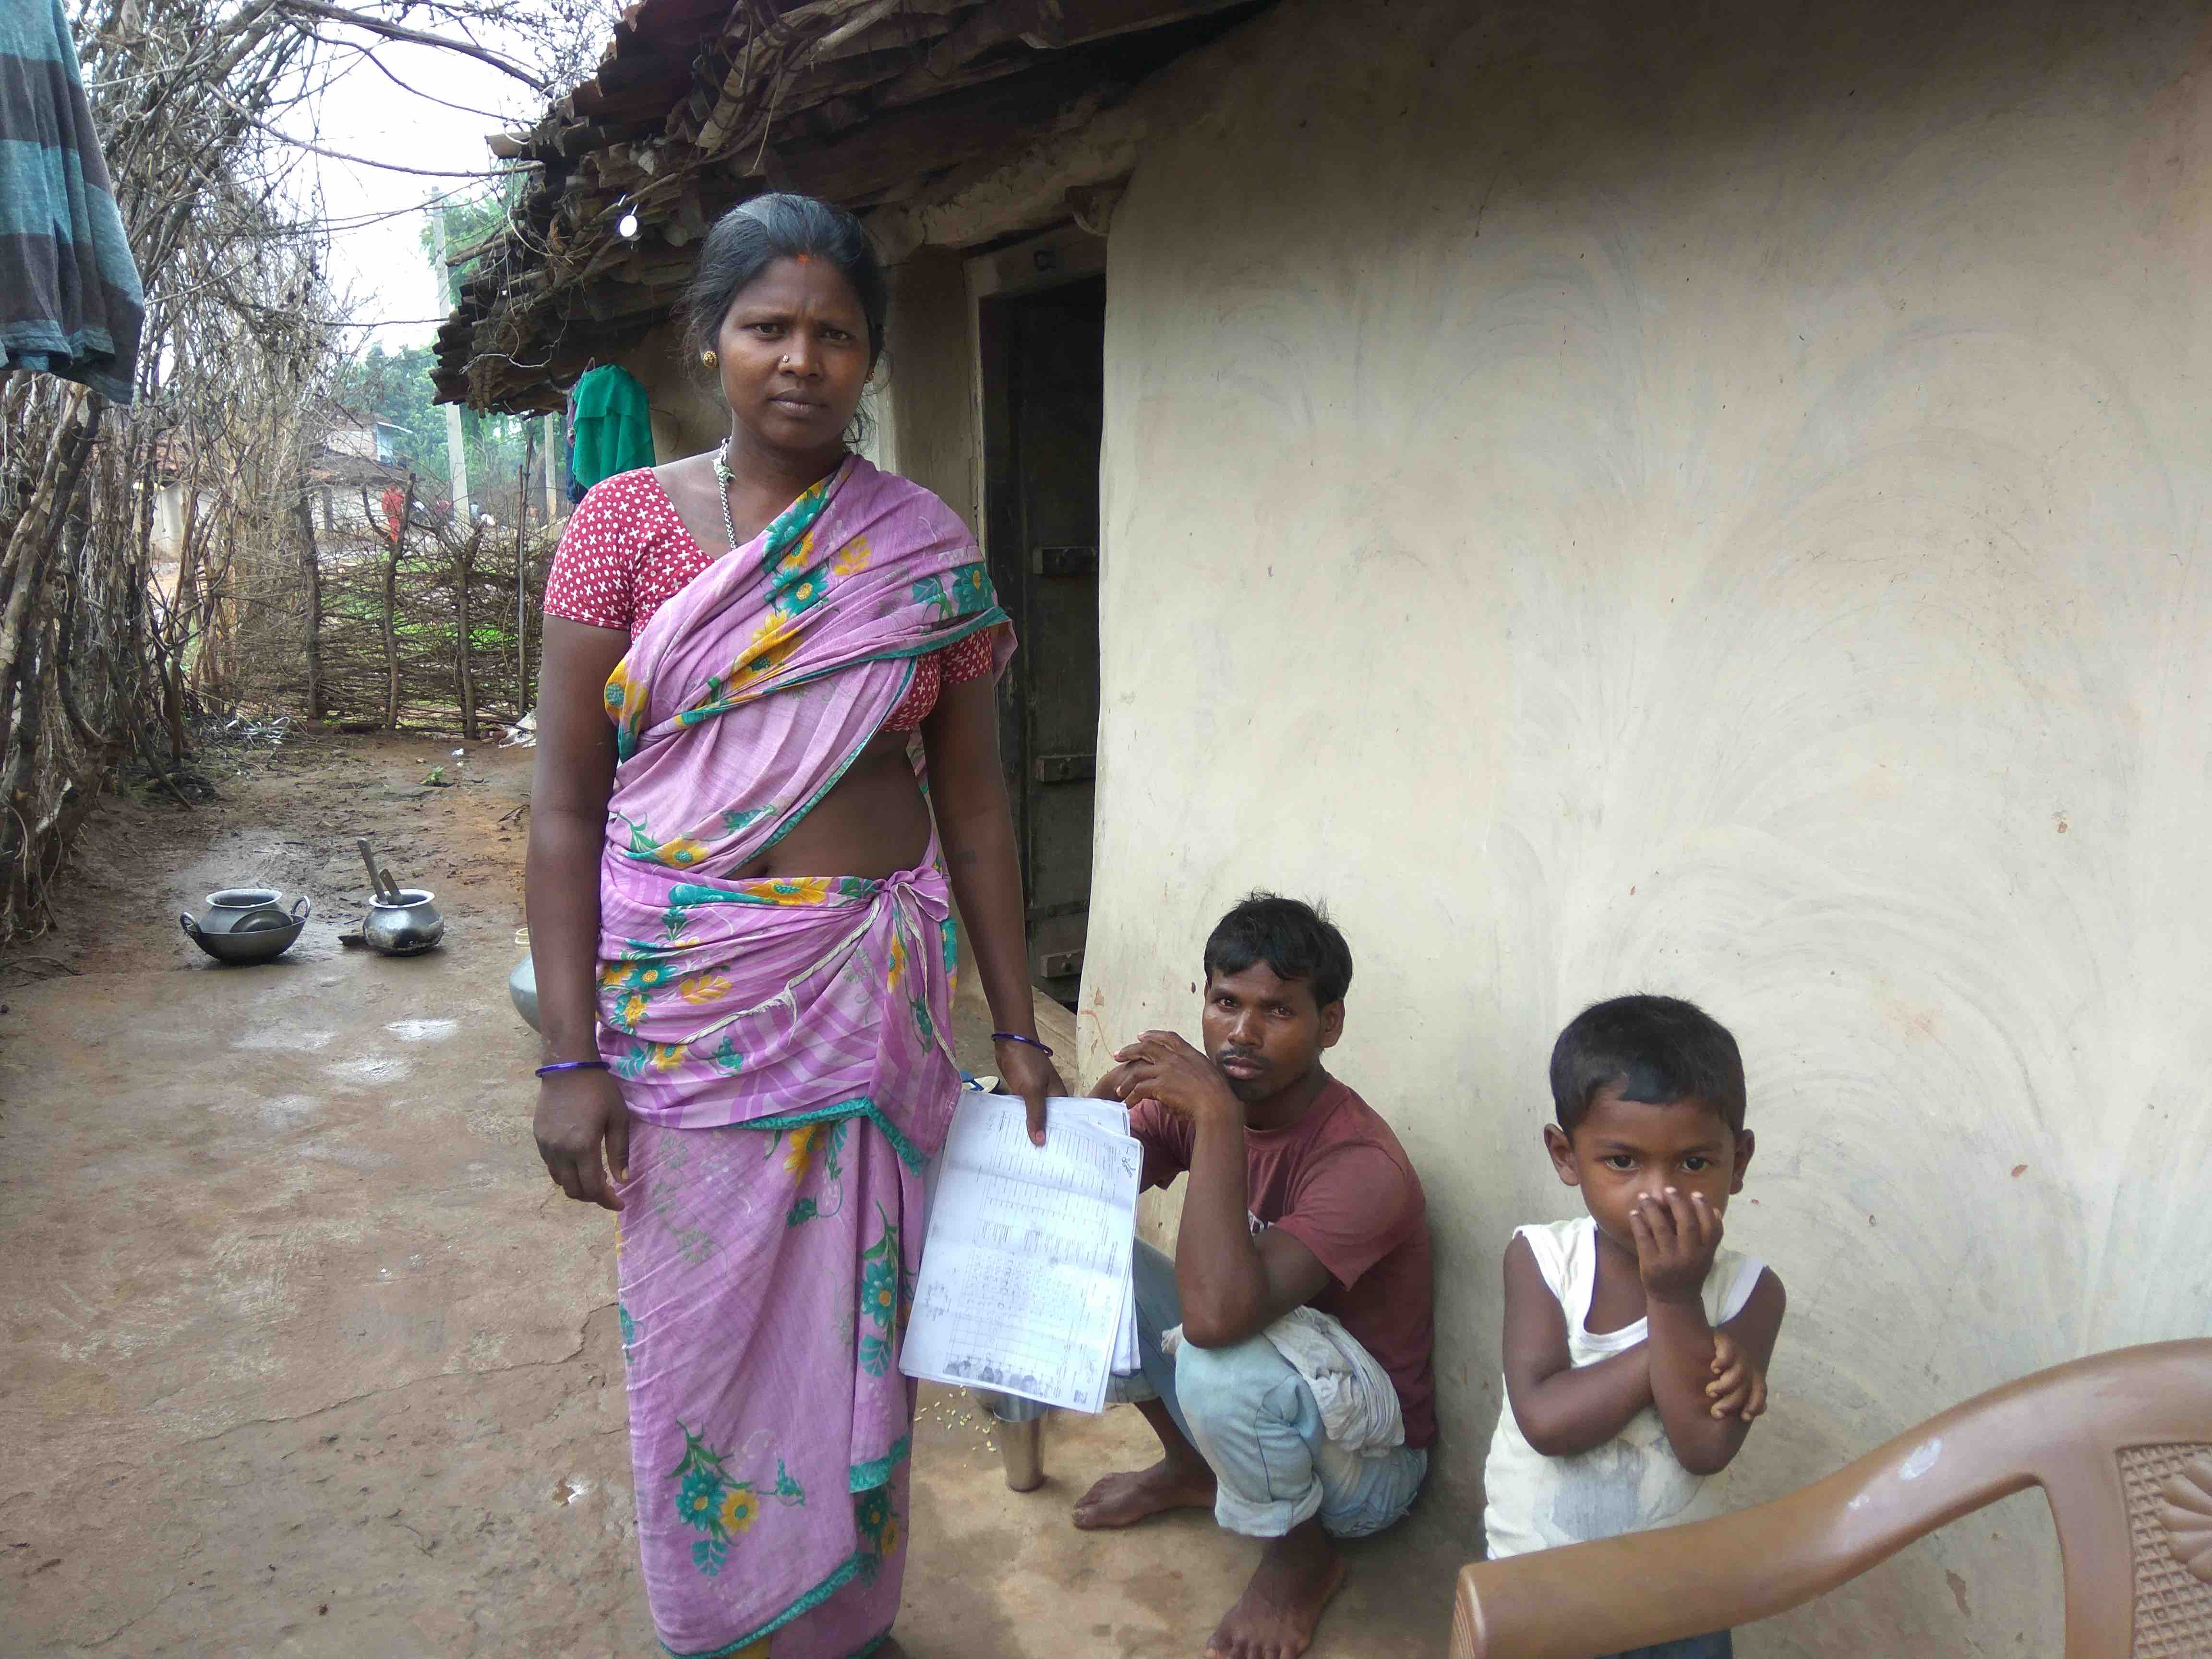 Umesh Oraon, Manju Devi and their son outside their house. Manju Devi is holding the papers highlight how Umesh's wages are going to a different account. Credit: Jahnavi Sen